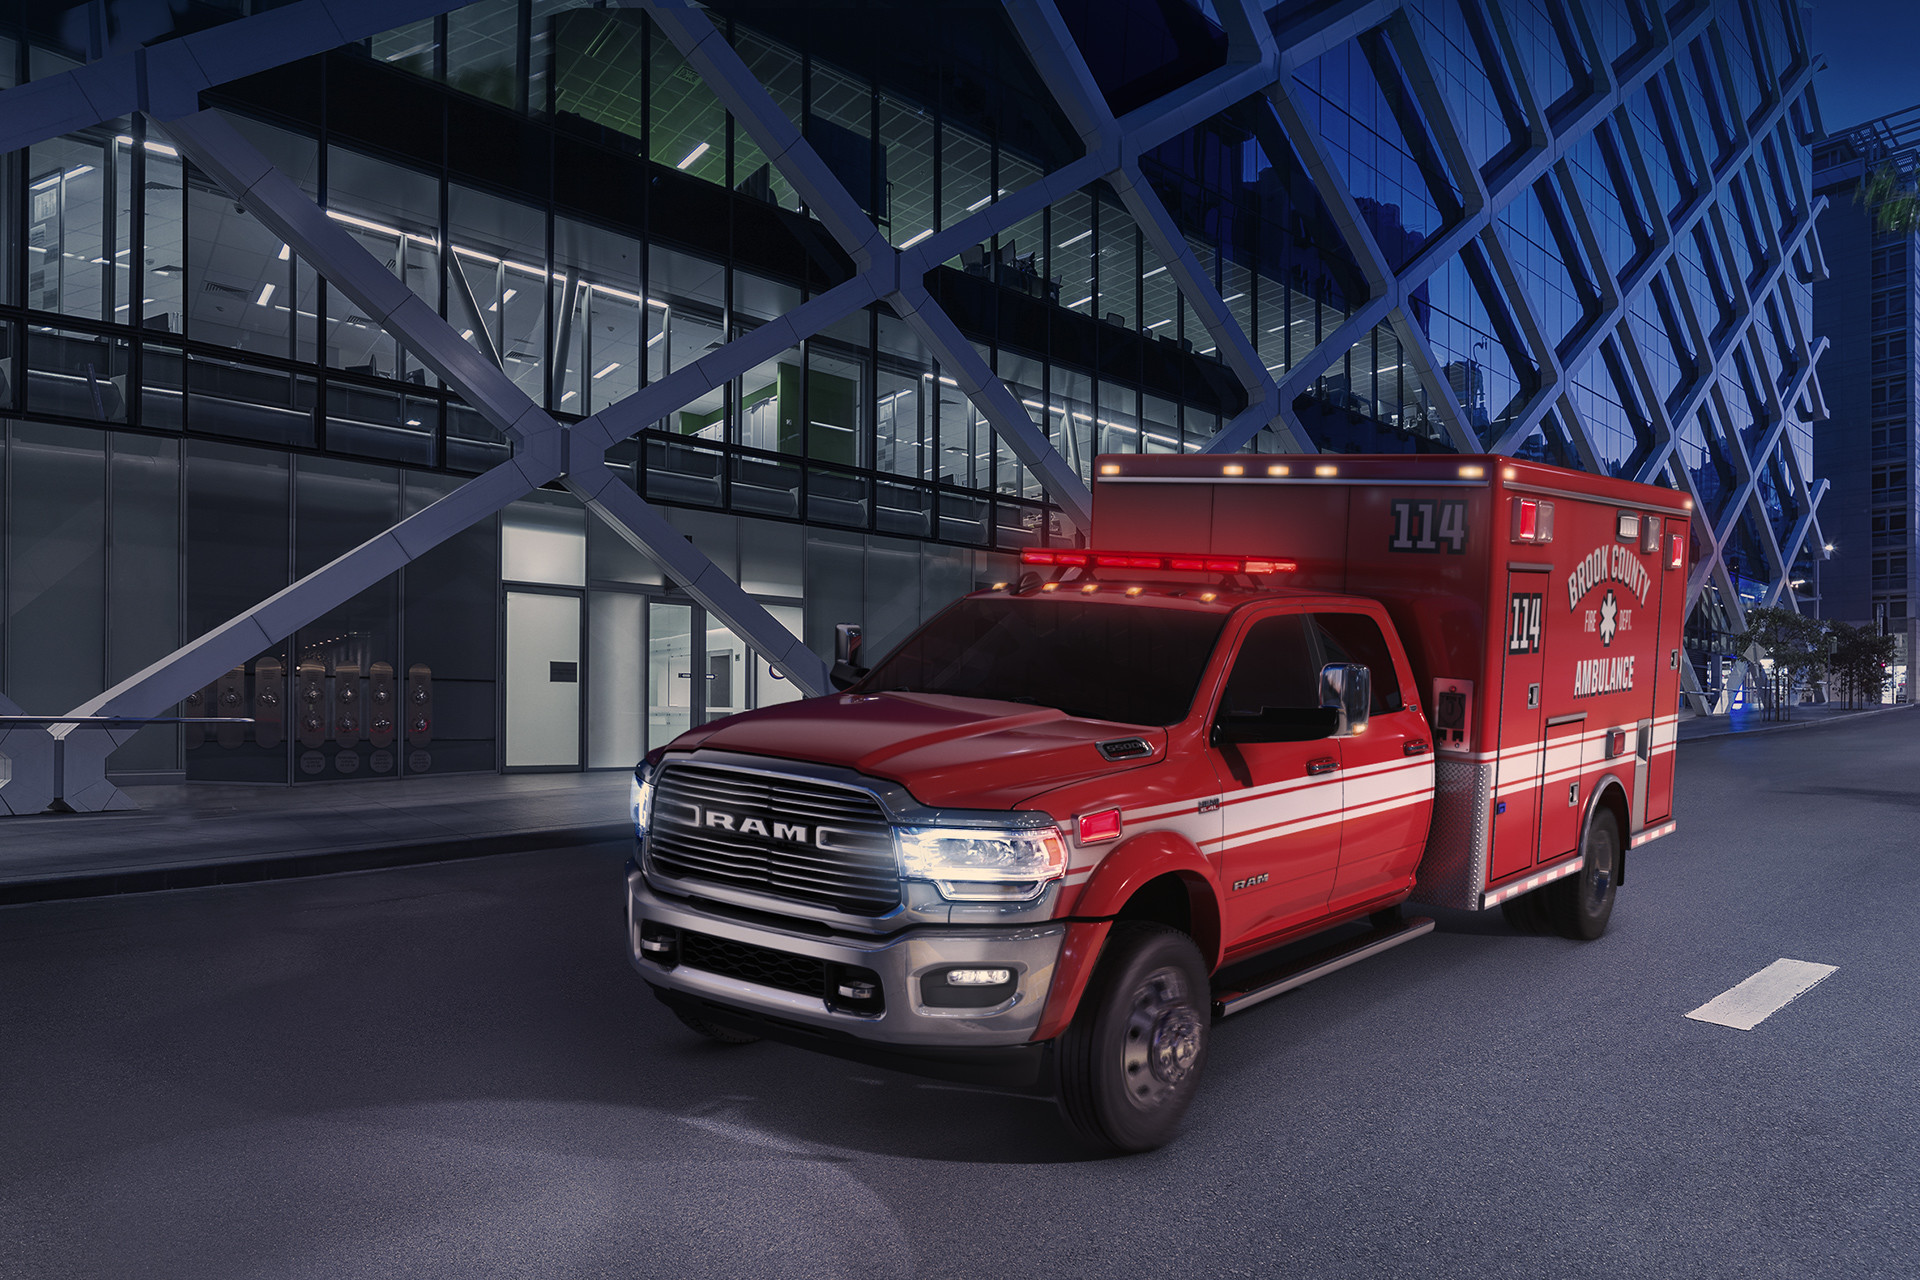 2019 Ram Chassis Cab exterior shown with an ambulance upfit.